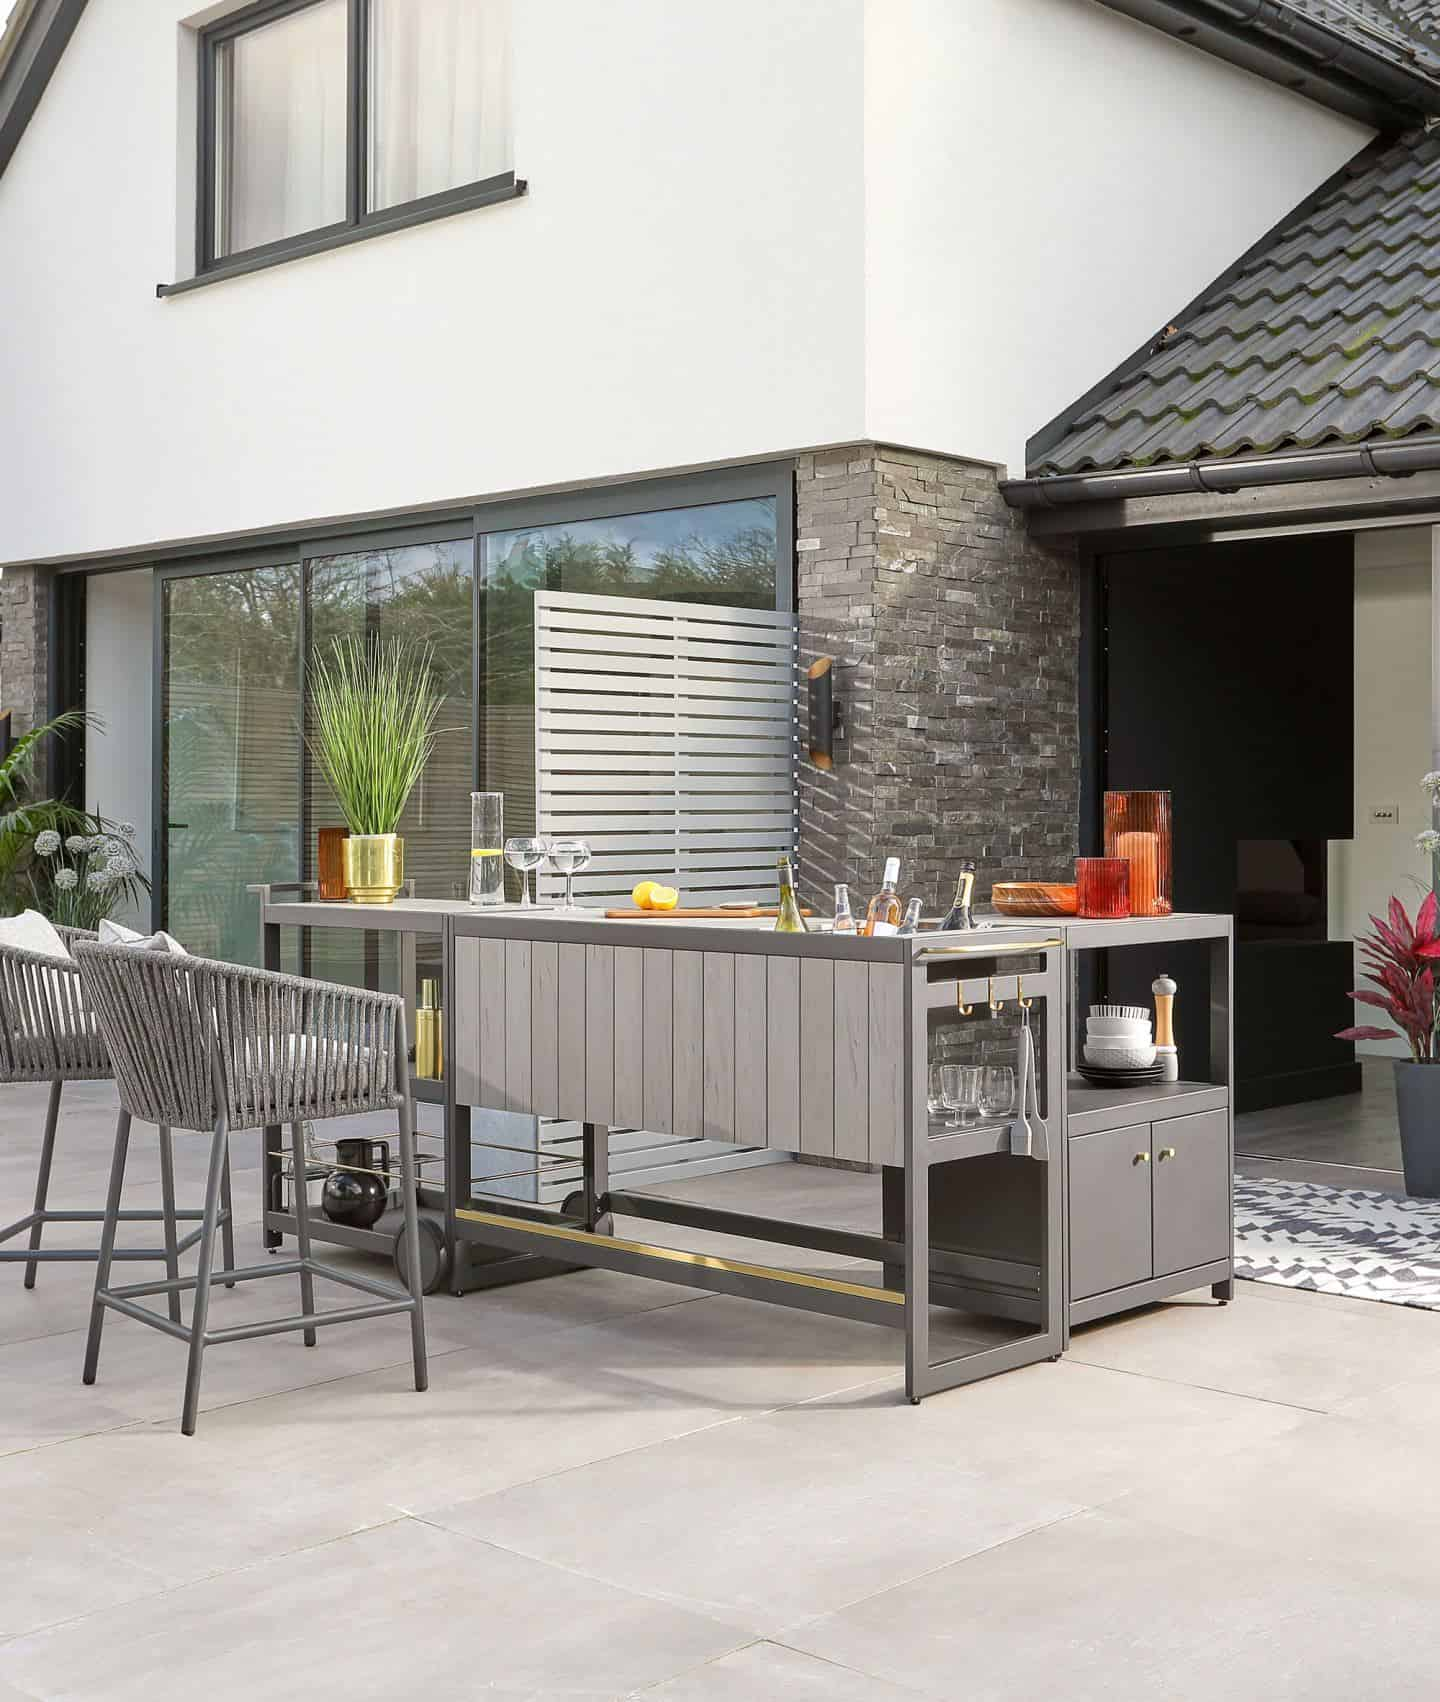 An outdoor kitchen bar makes entertaining much easier for your summer staycation in your garden